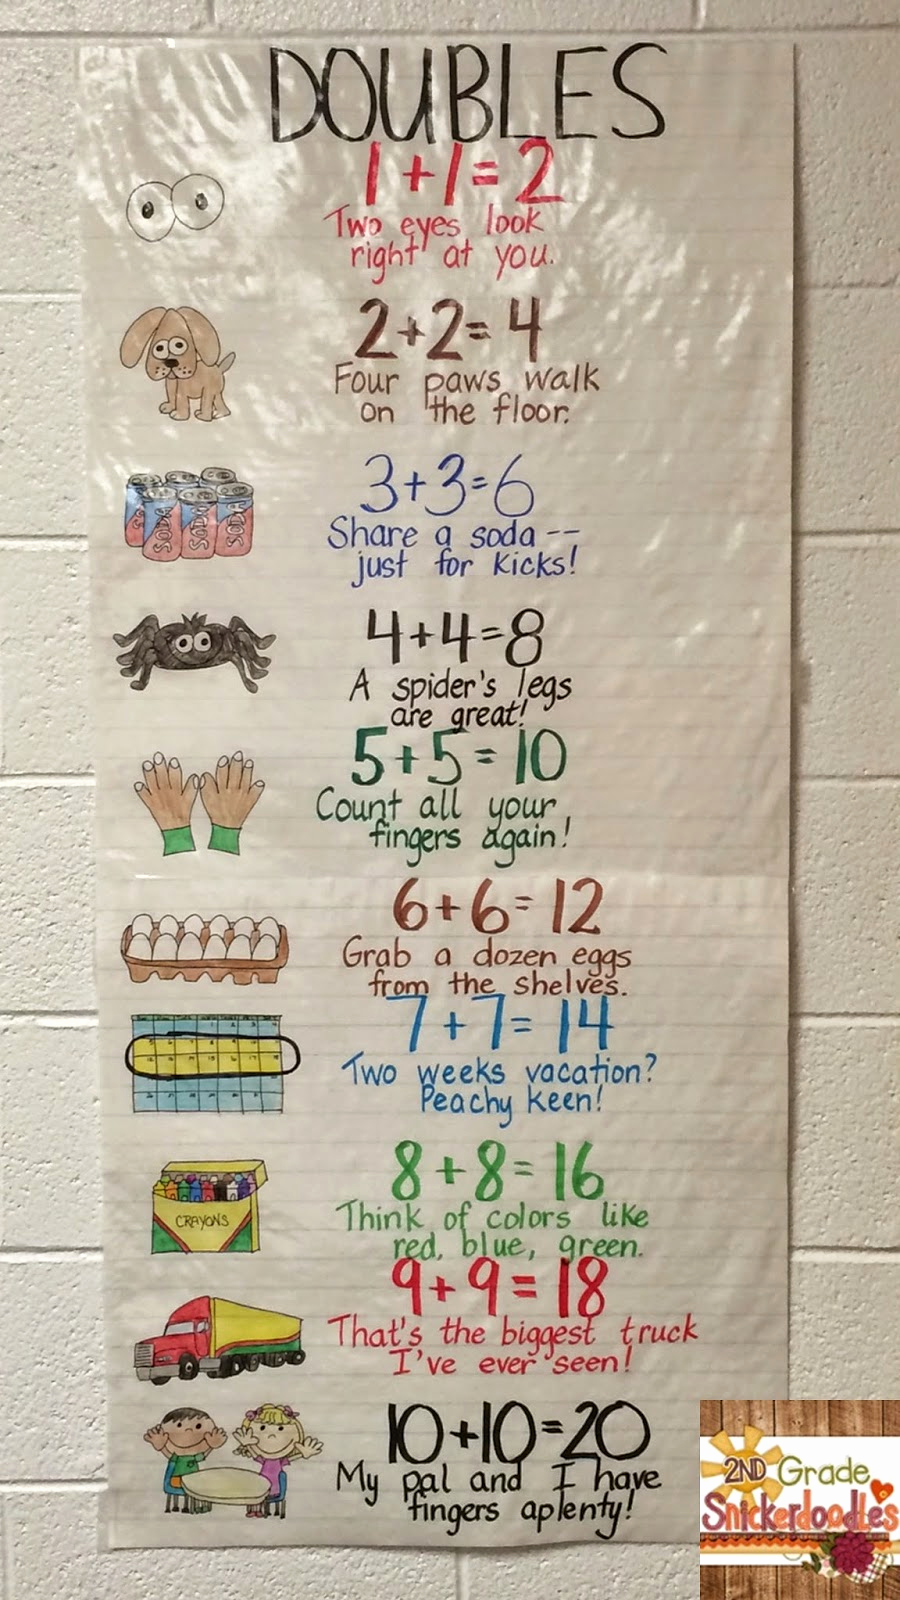 Double Facts Worksheets New 2nd Grade Snickerdoodles Doubles Facts Freebie